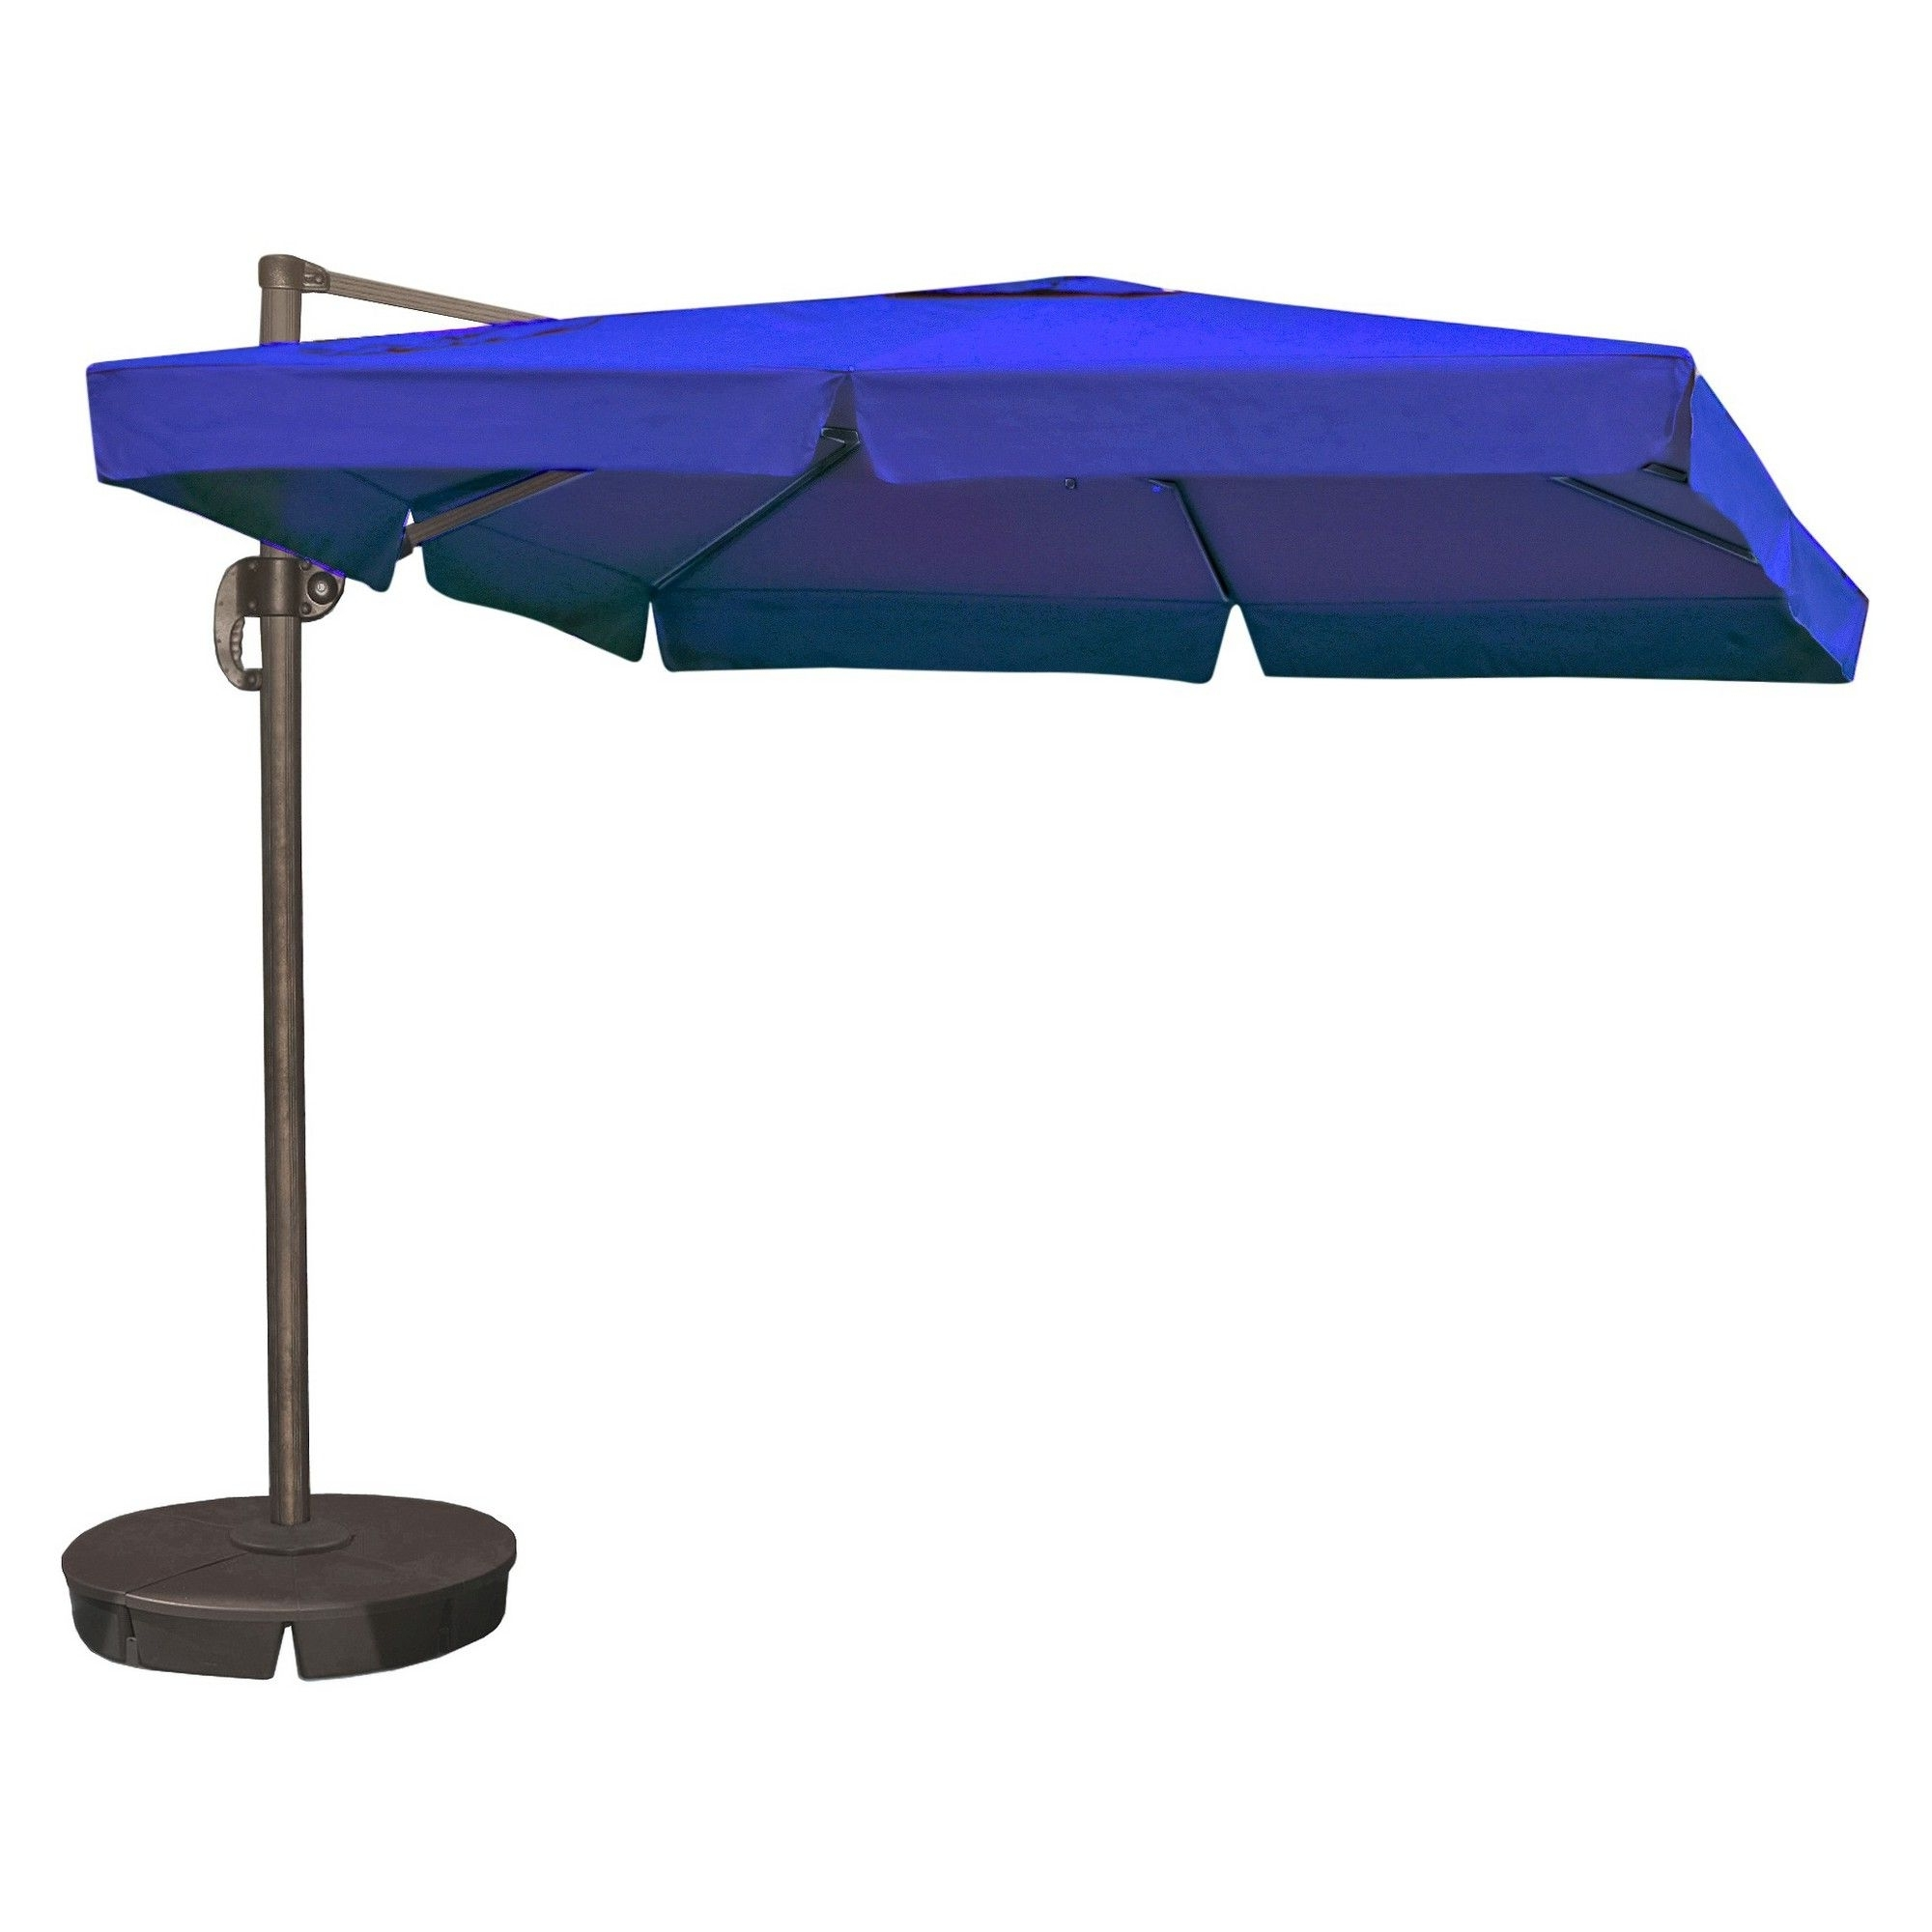 Best And Newest Patio Umbrellas With Valance Pertaining To Island Umbrella Santorini Ii 10' Square Cantilever Umbrella With (View 1 of 20)